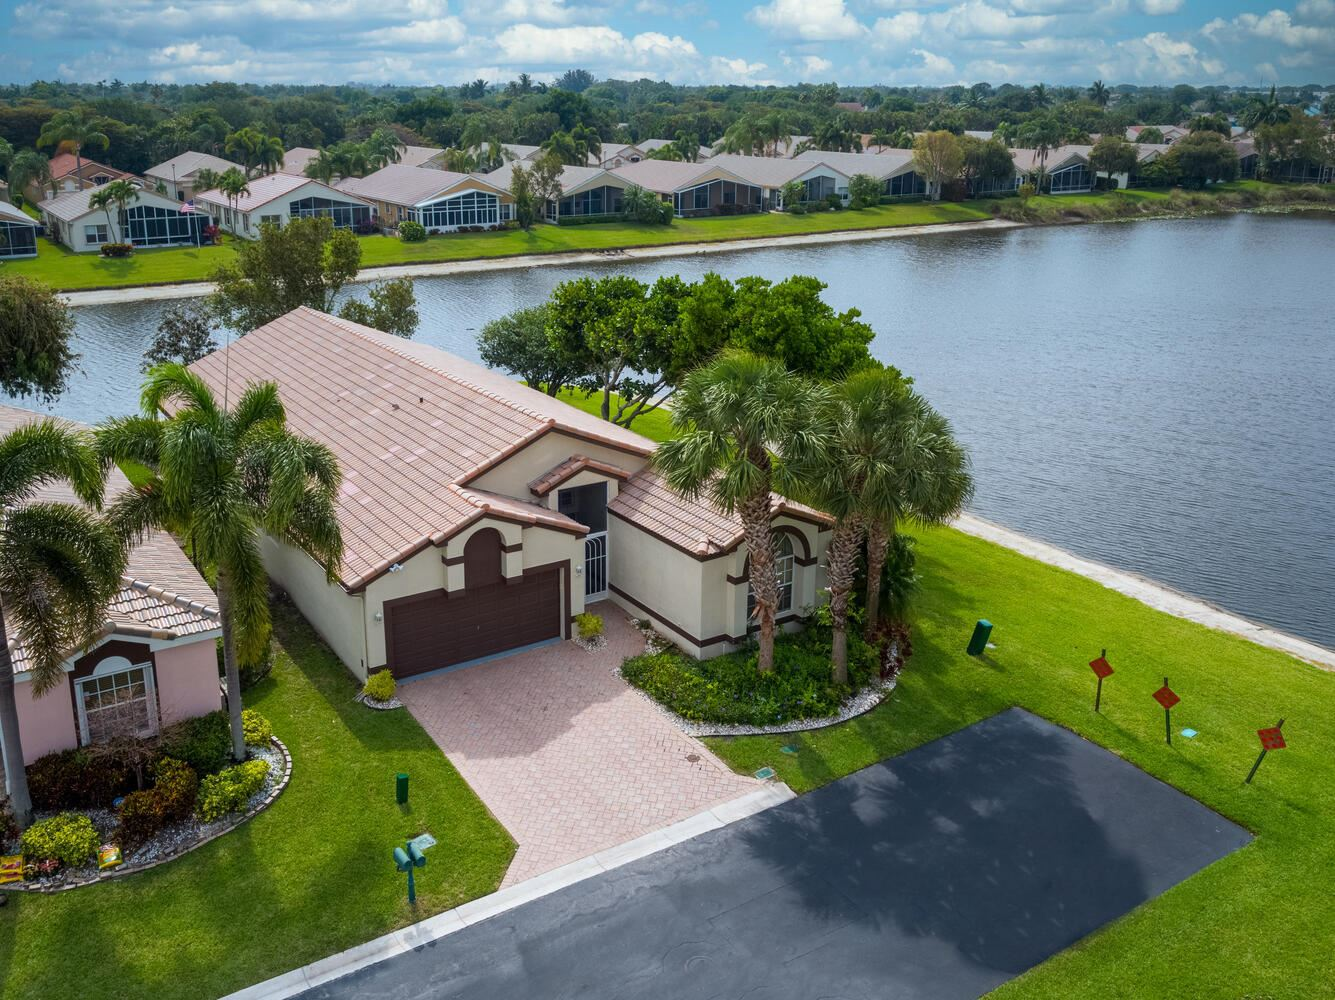 6456 Placid Lake Lane, Boynton Beach, FL 33437 - MLS#: RX-10710060